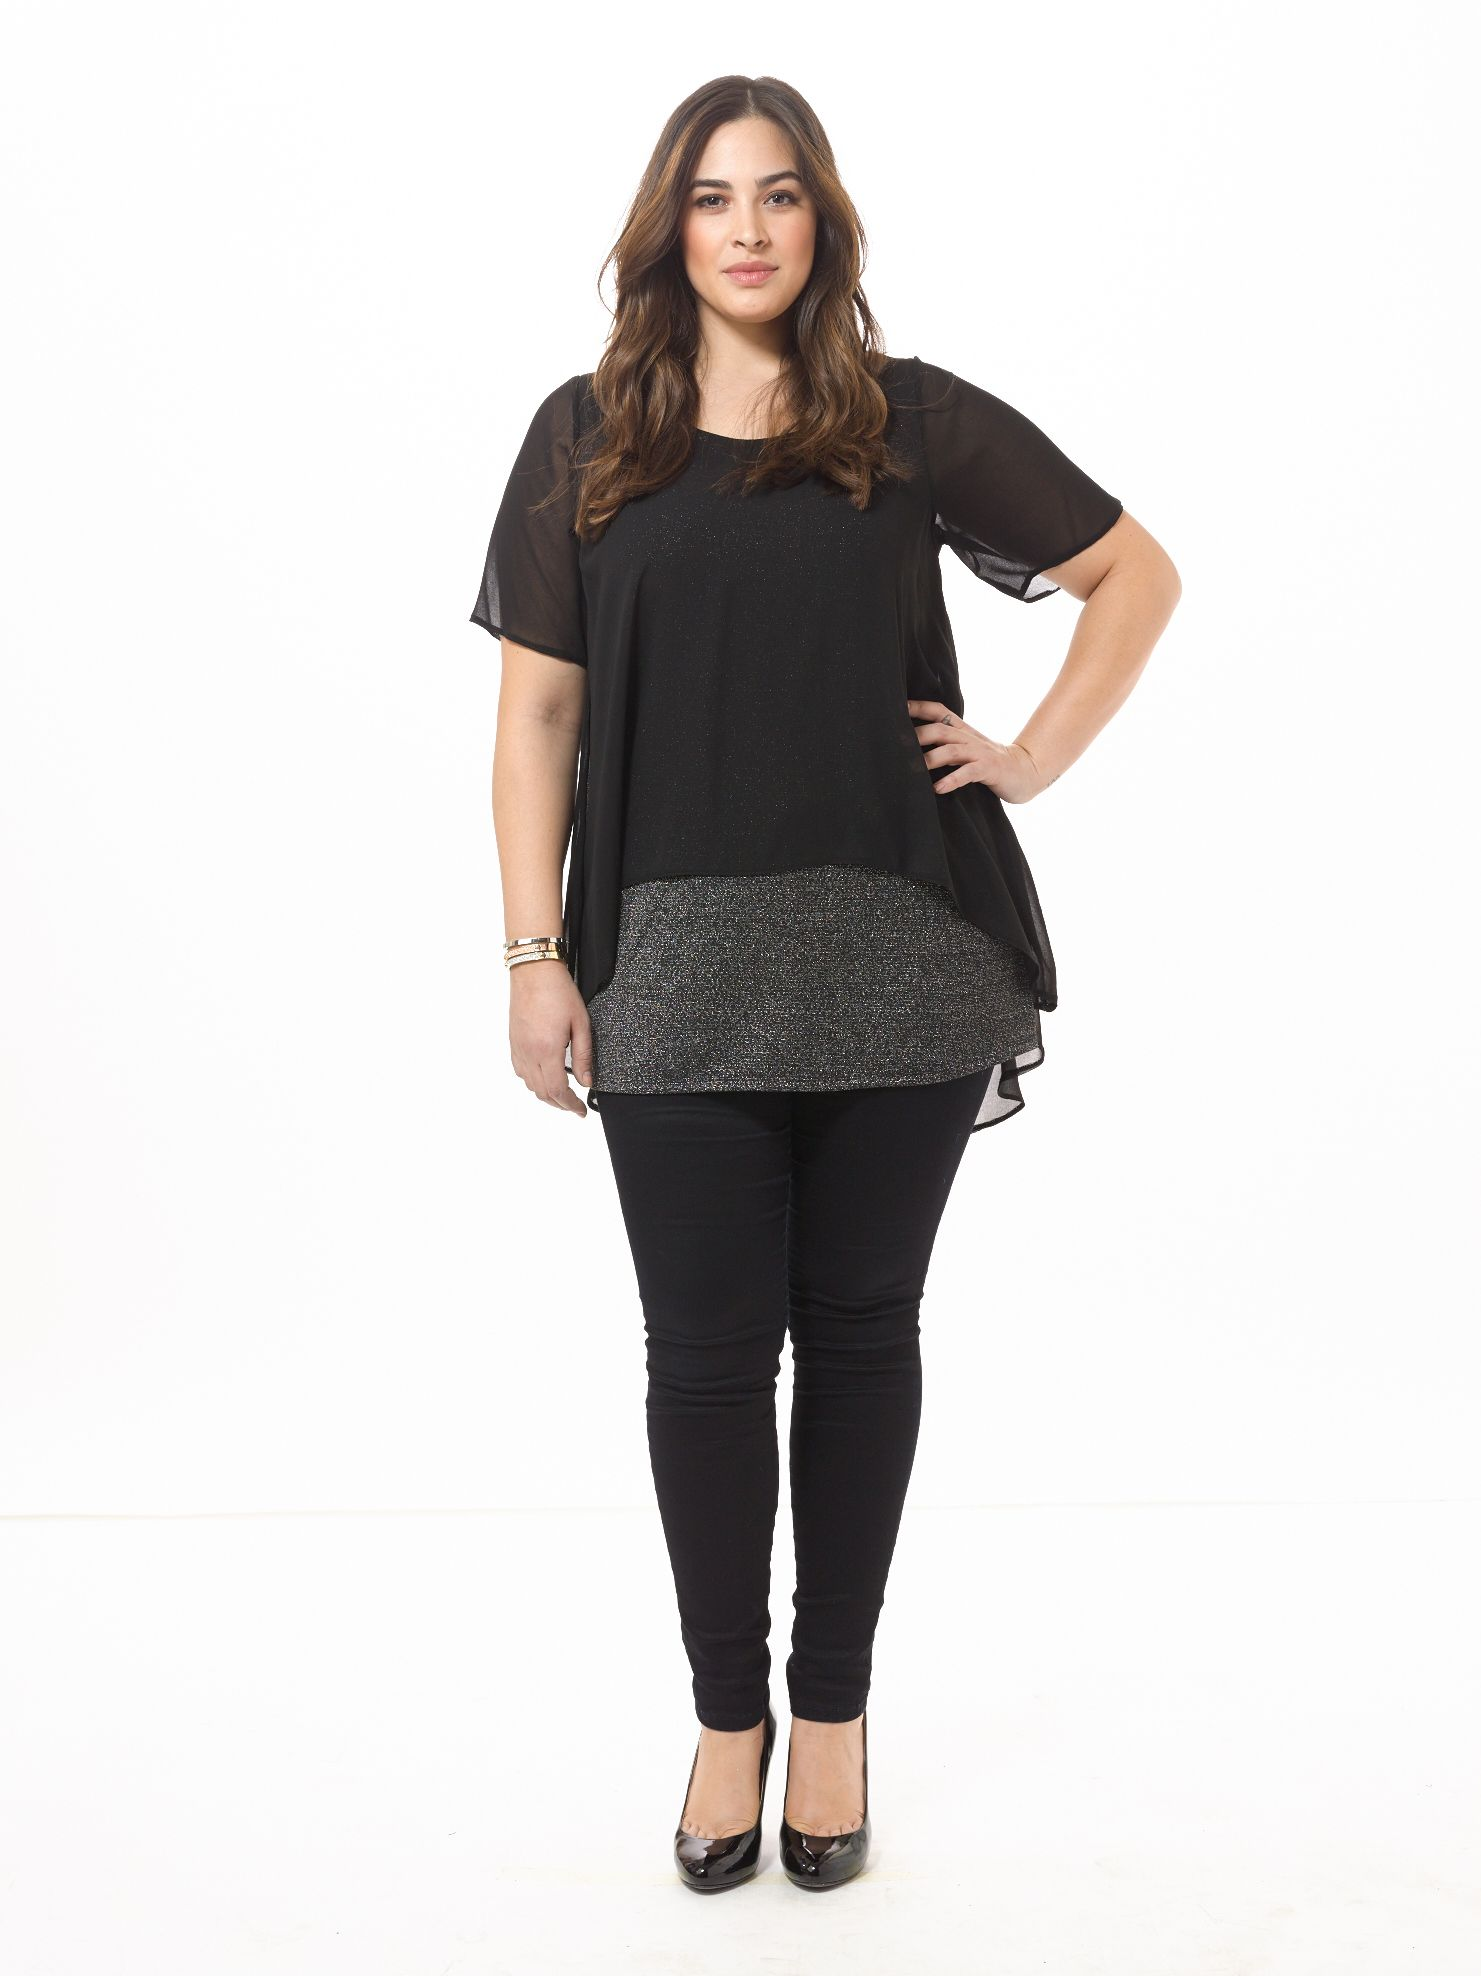 61efb0c0266 Lurex Layer Top by Evans, Available in sizes 10/12,14/16,18/20, 22/24 and  26/28